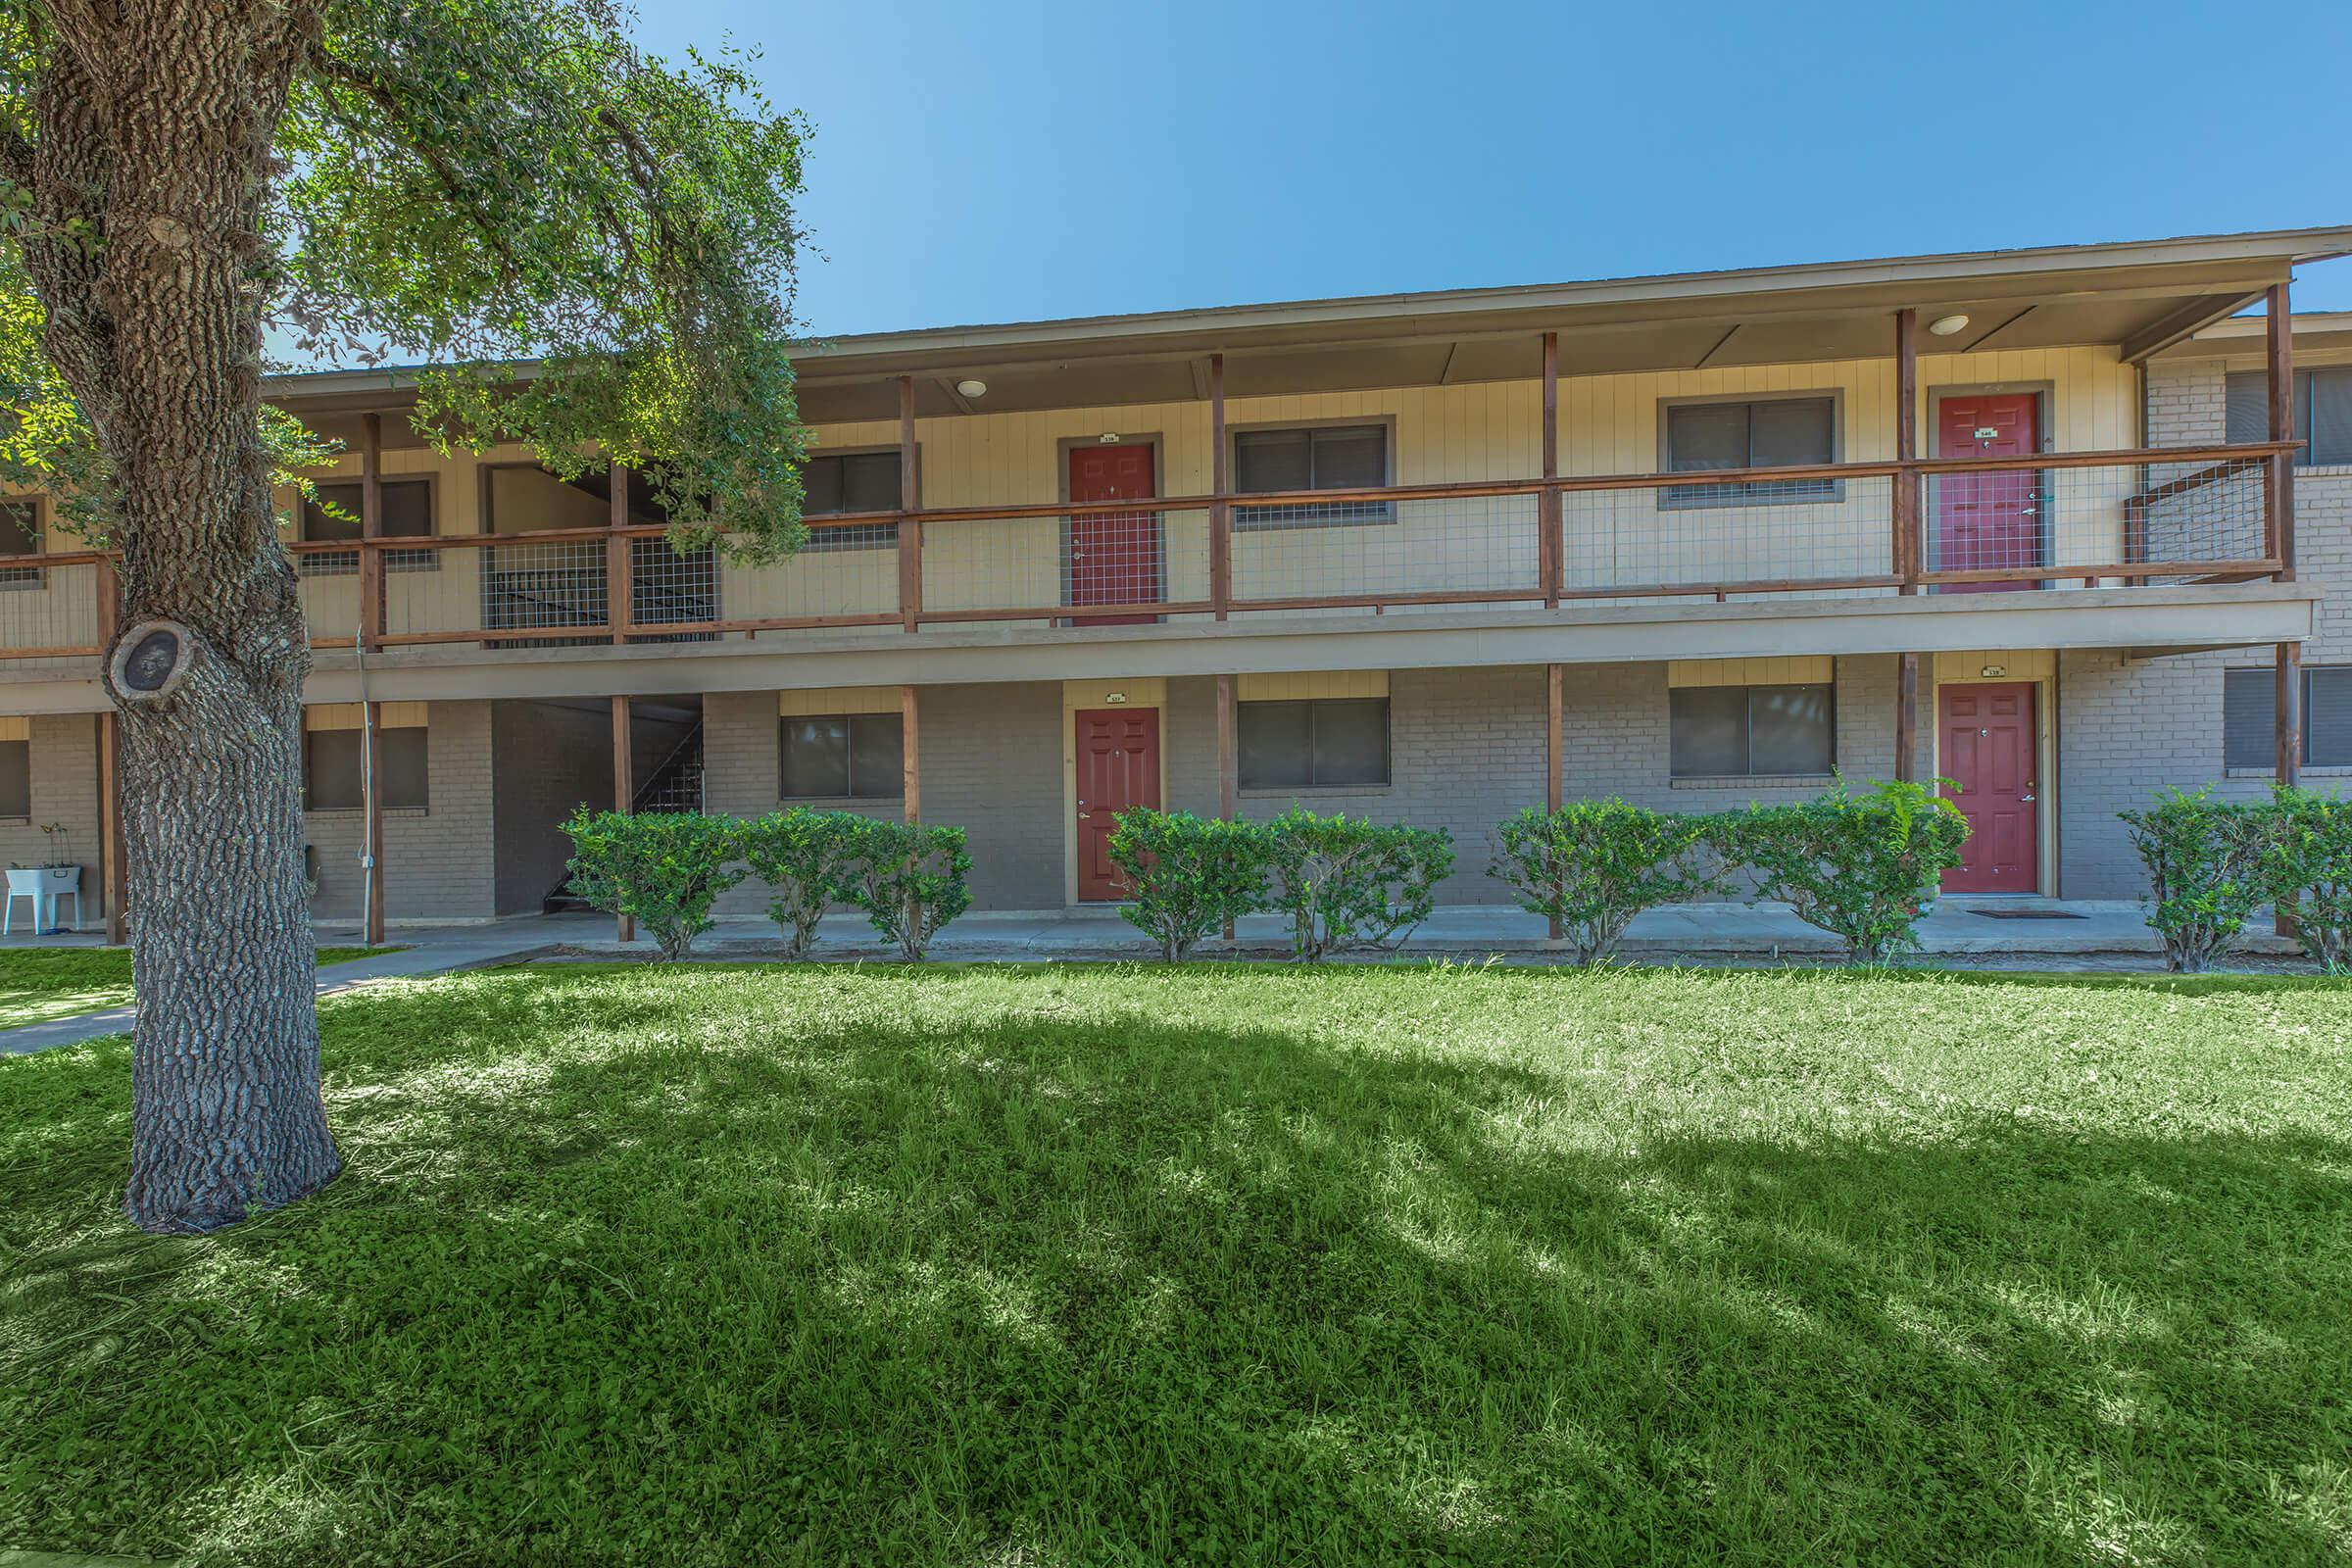 EAGLE'S LANDING APARTMENTS IN BEEVILLE, TEXAS